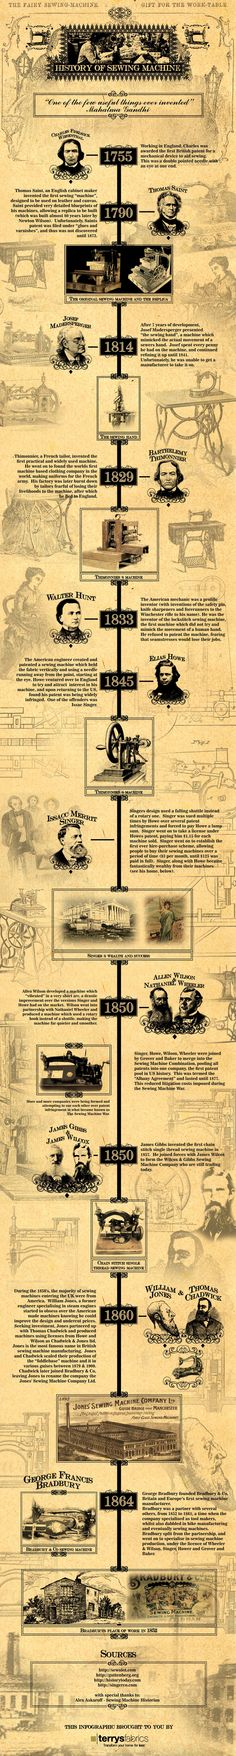 History of Sewing Machine   #infographic #SewingMachine #History